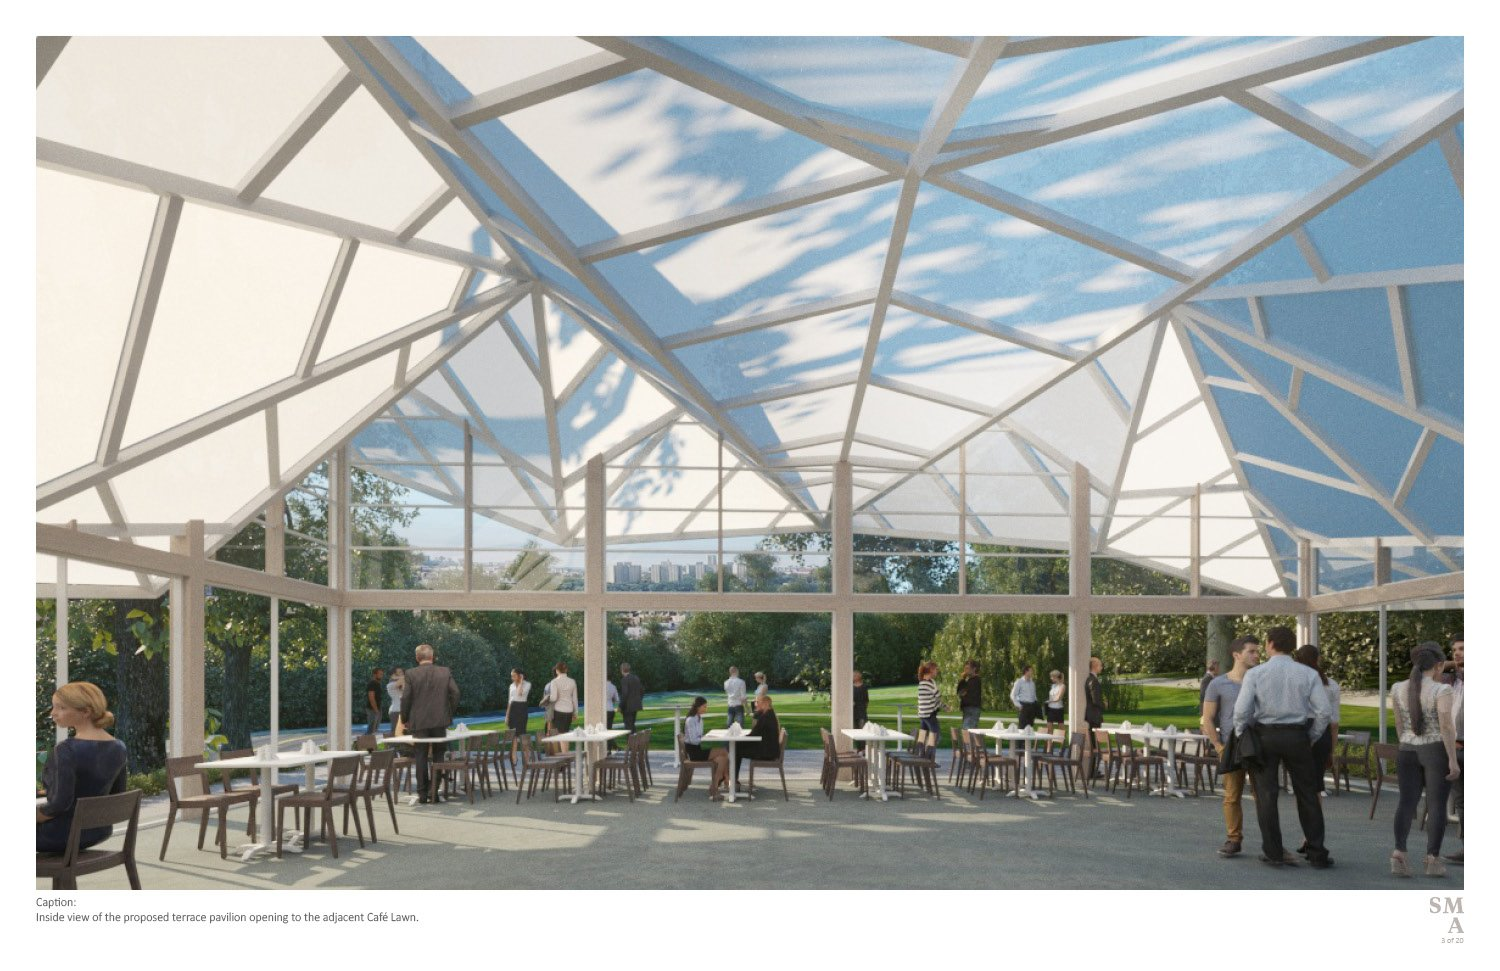 Inside view of the proposed terrace pavilion opening to the adjacent Café Lawn. SMA | Stephen Moser Architect - Design Team